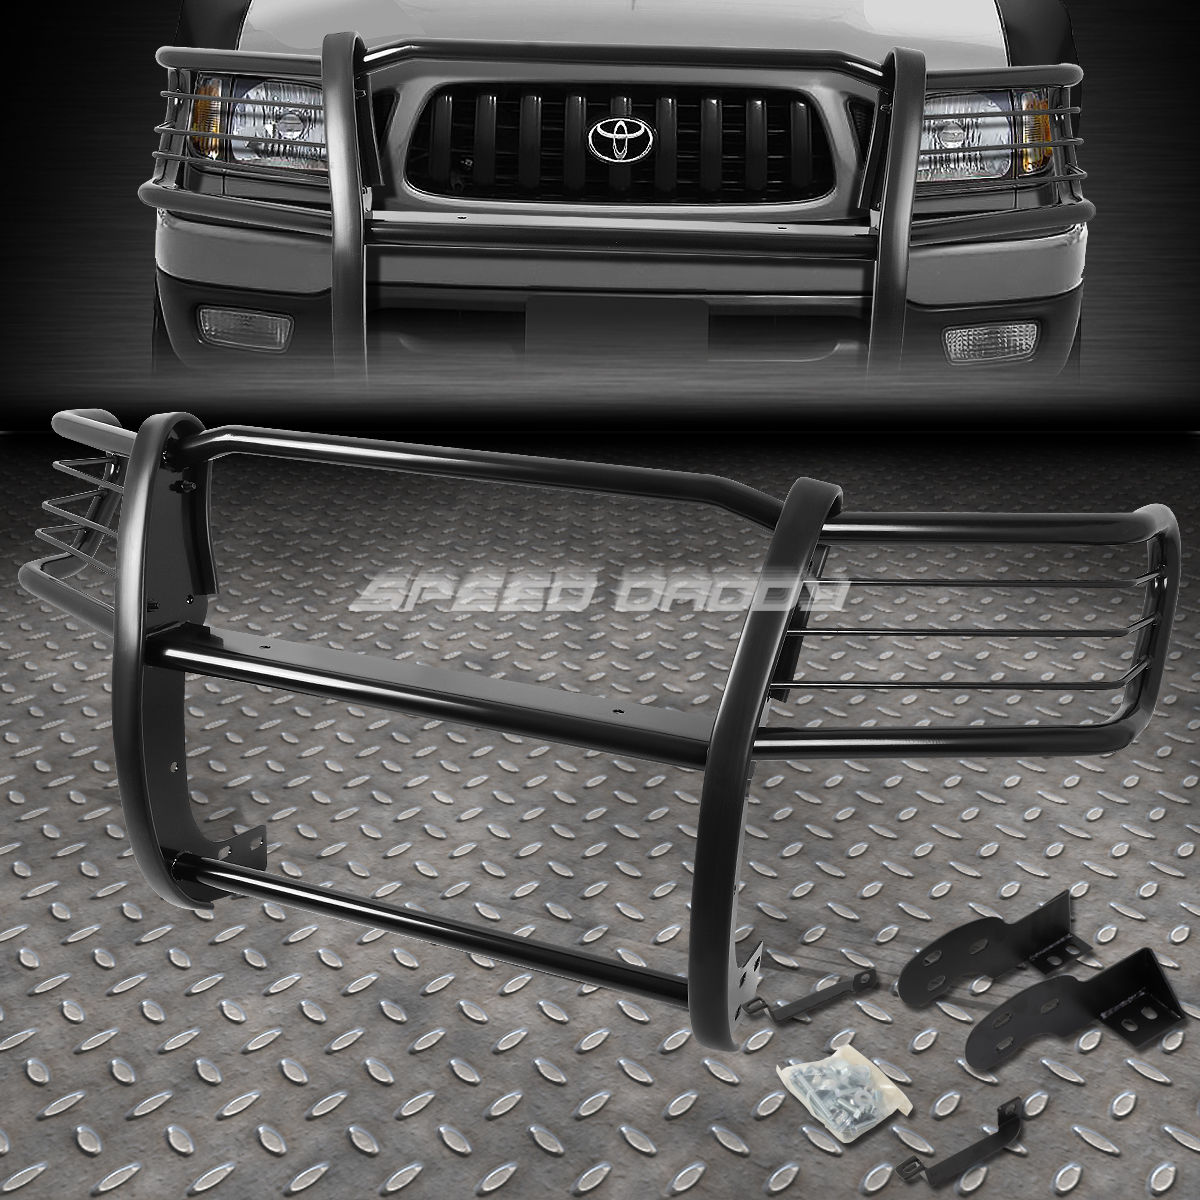 グリル 黒塗装されたマイルストーンフロントバンパーグリルガードfor 98-04 TOYOTA TACOMA PICKUP BLACK COATED MILD STEEL FRONT BUMPER GRILL GUARD FOR 98-04 TOYOTA TACOMA PICKUP